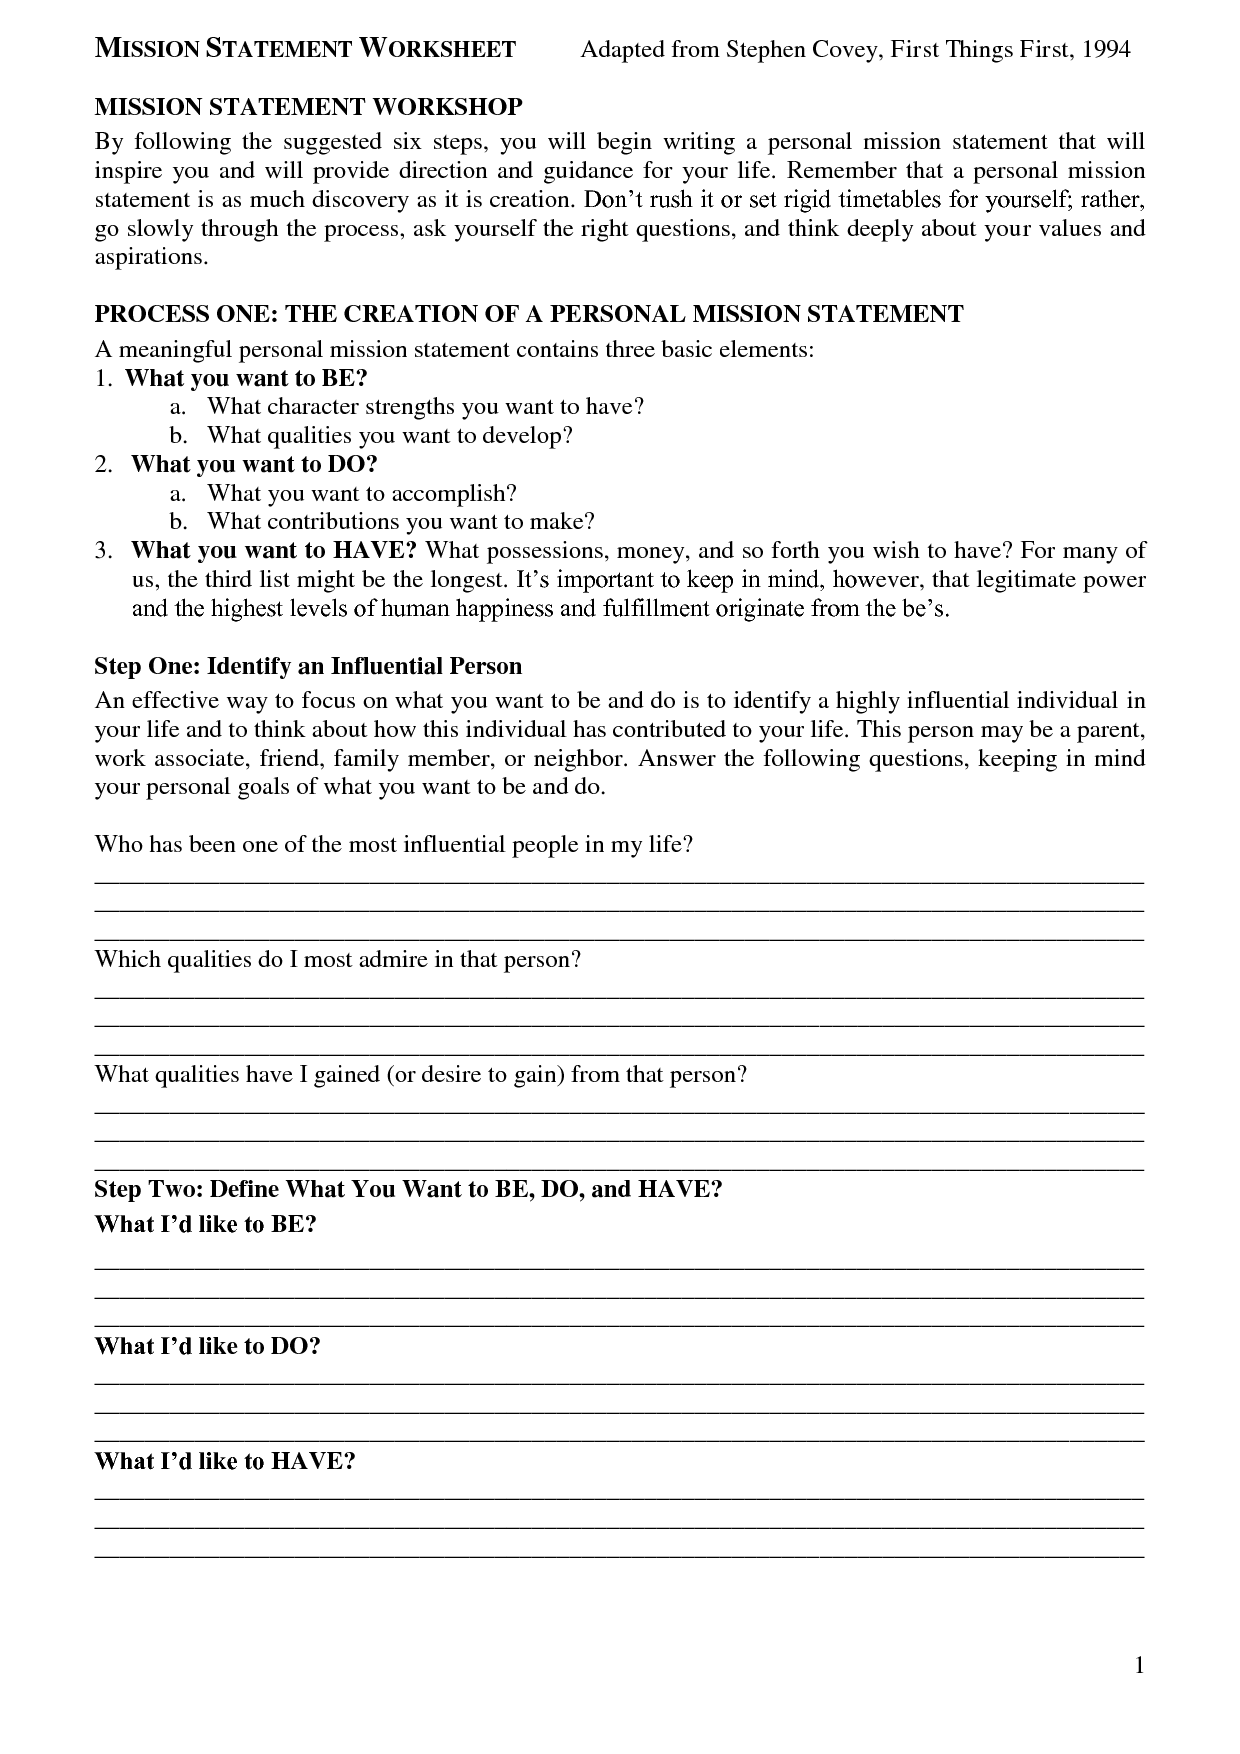 Sean Covey Mission Statement Worksheet